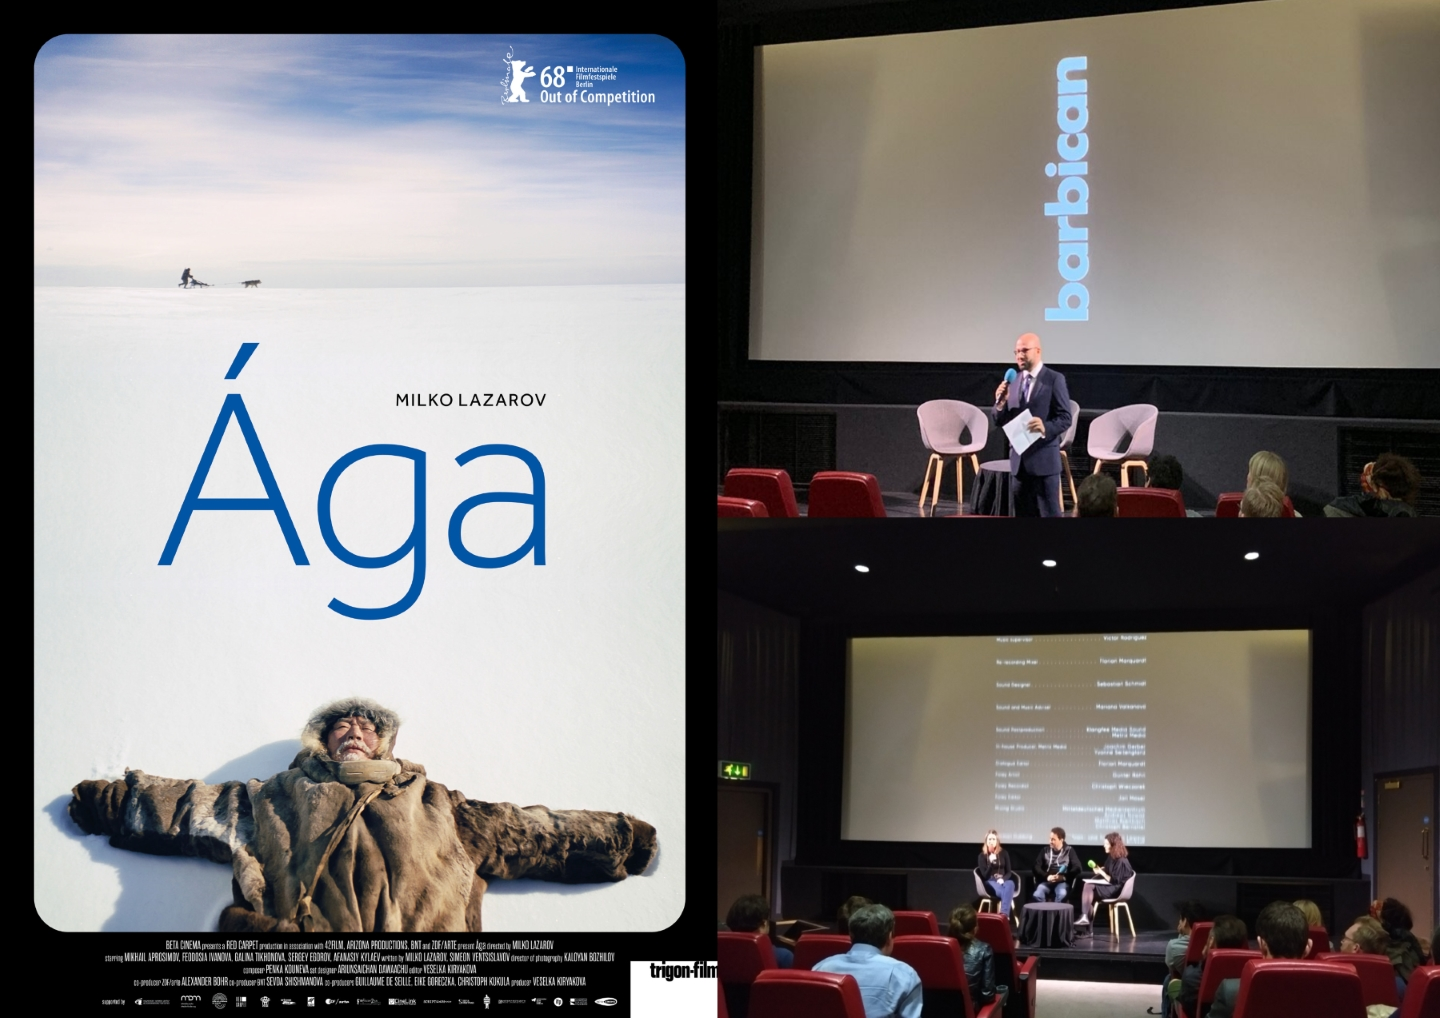 Aga-2019-London-Barbican